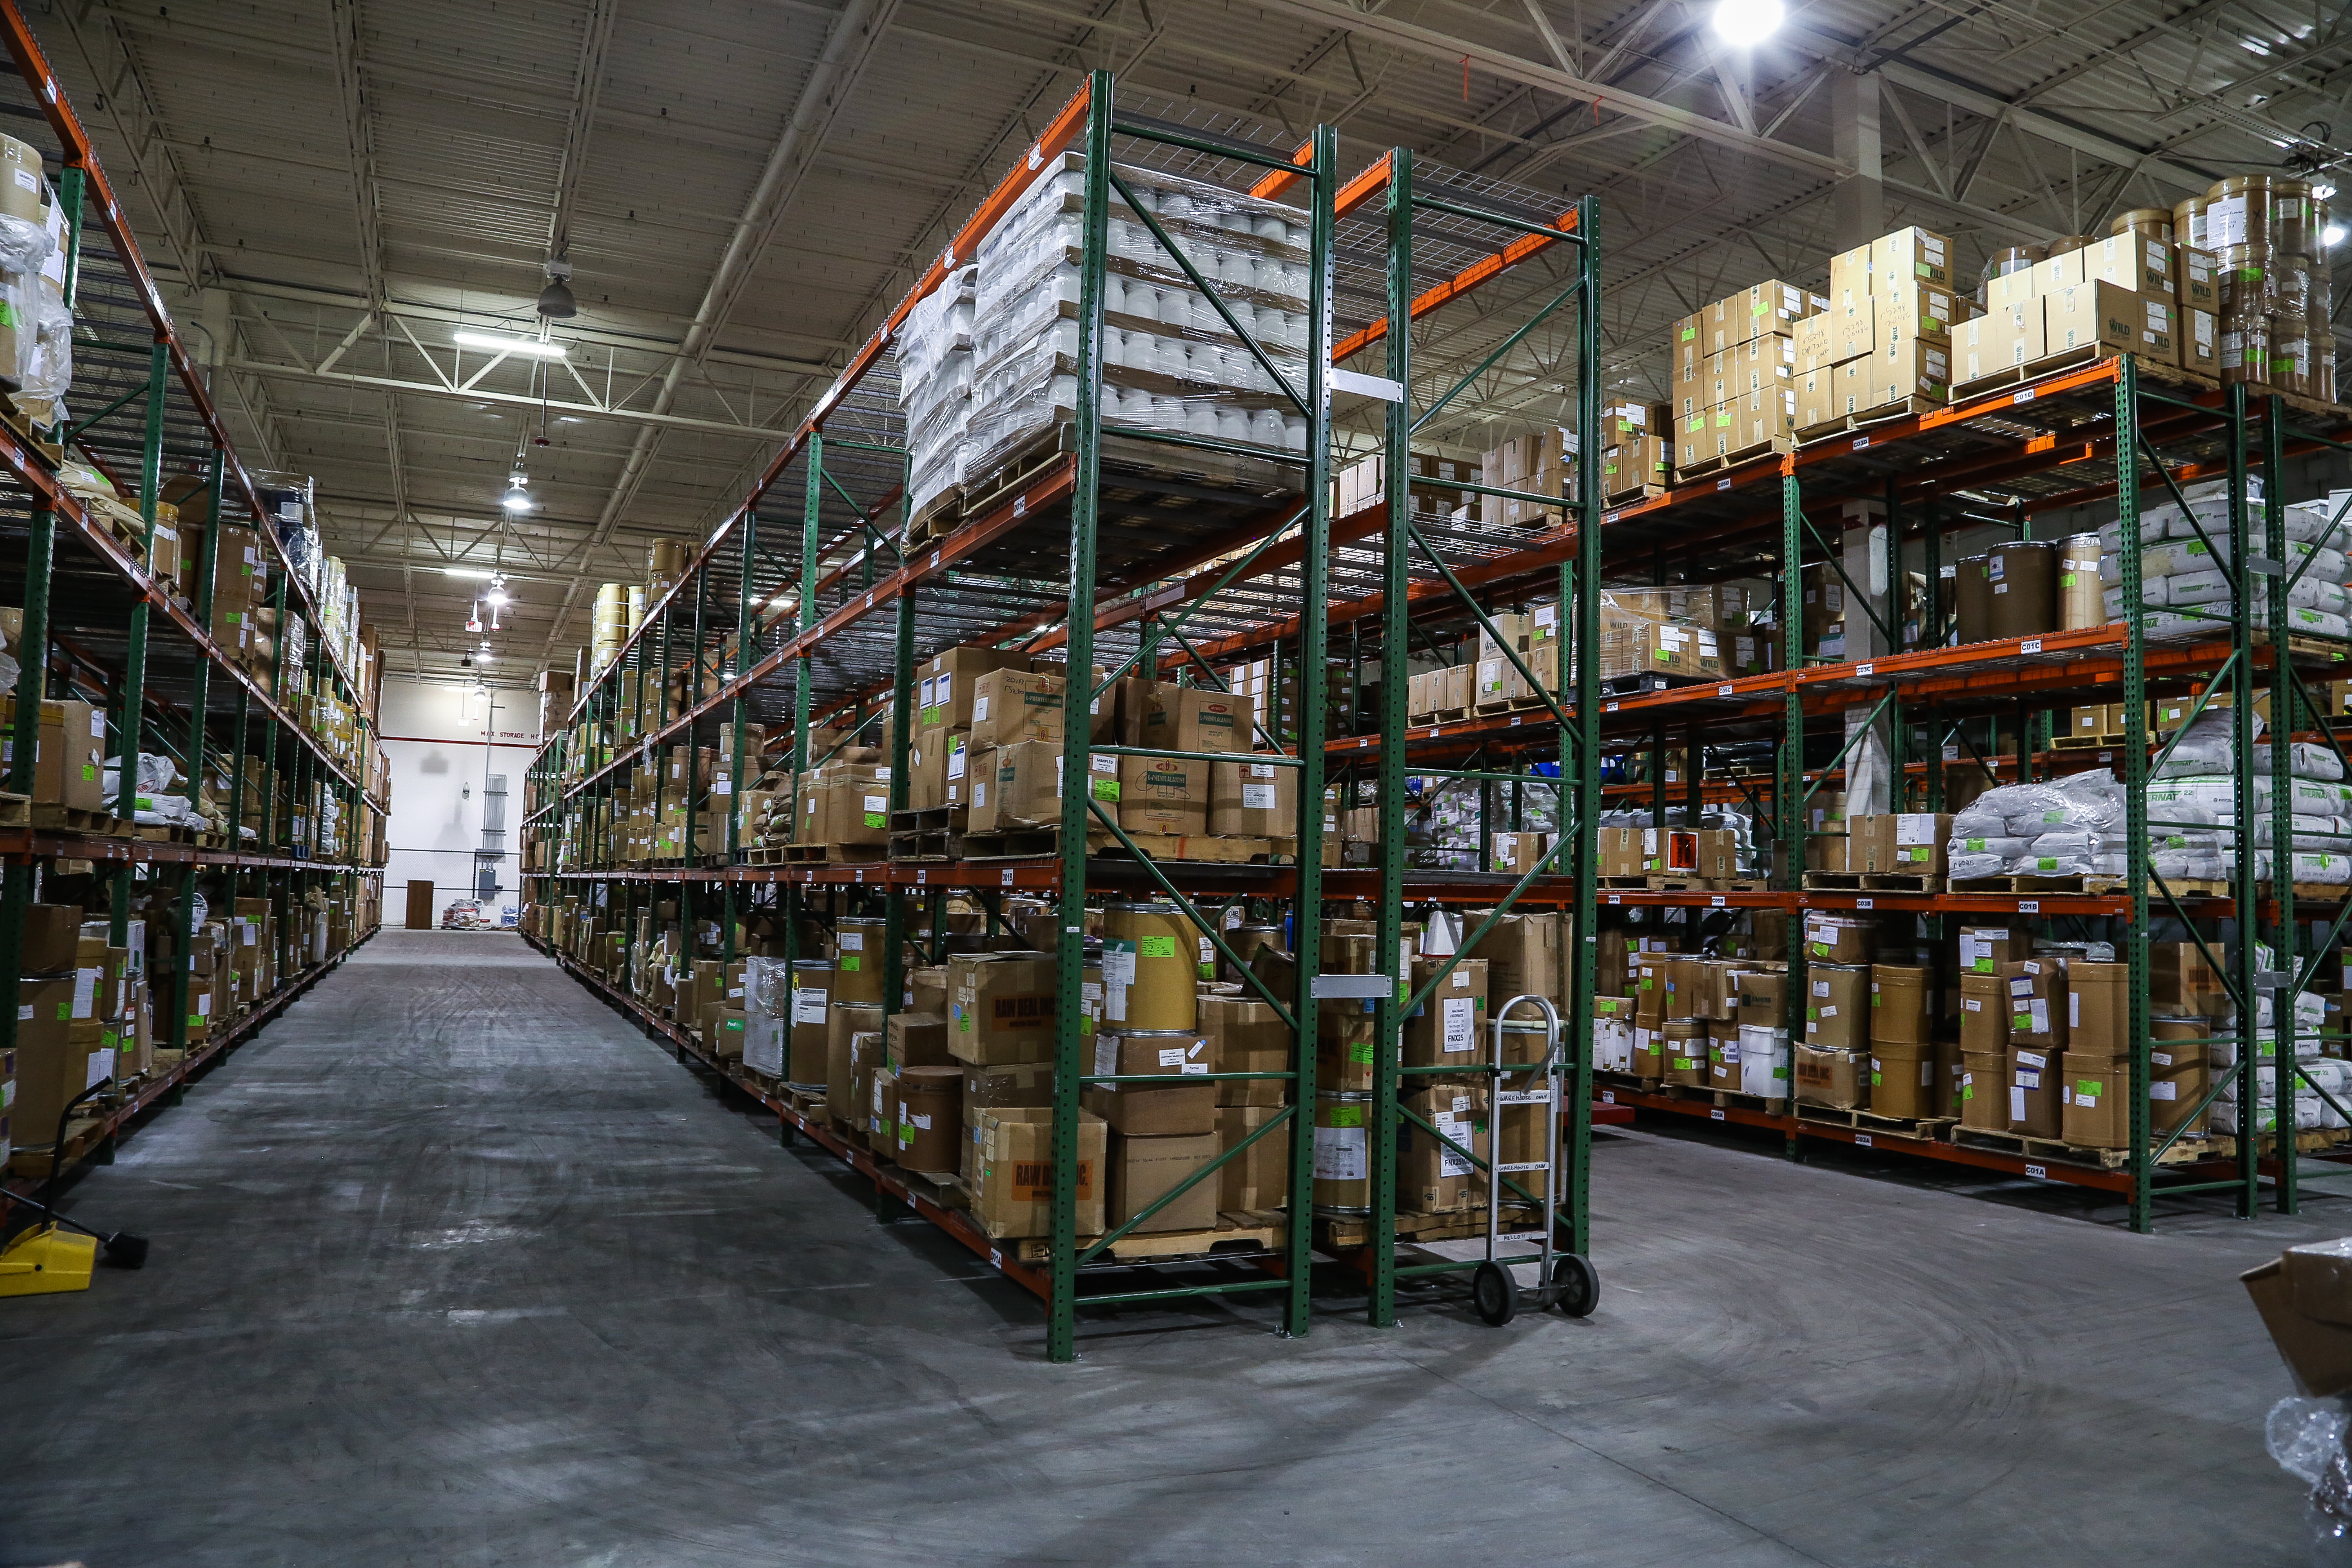 Over 50,000 sf of Warehousing Space